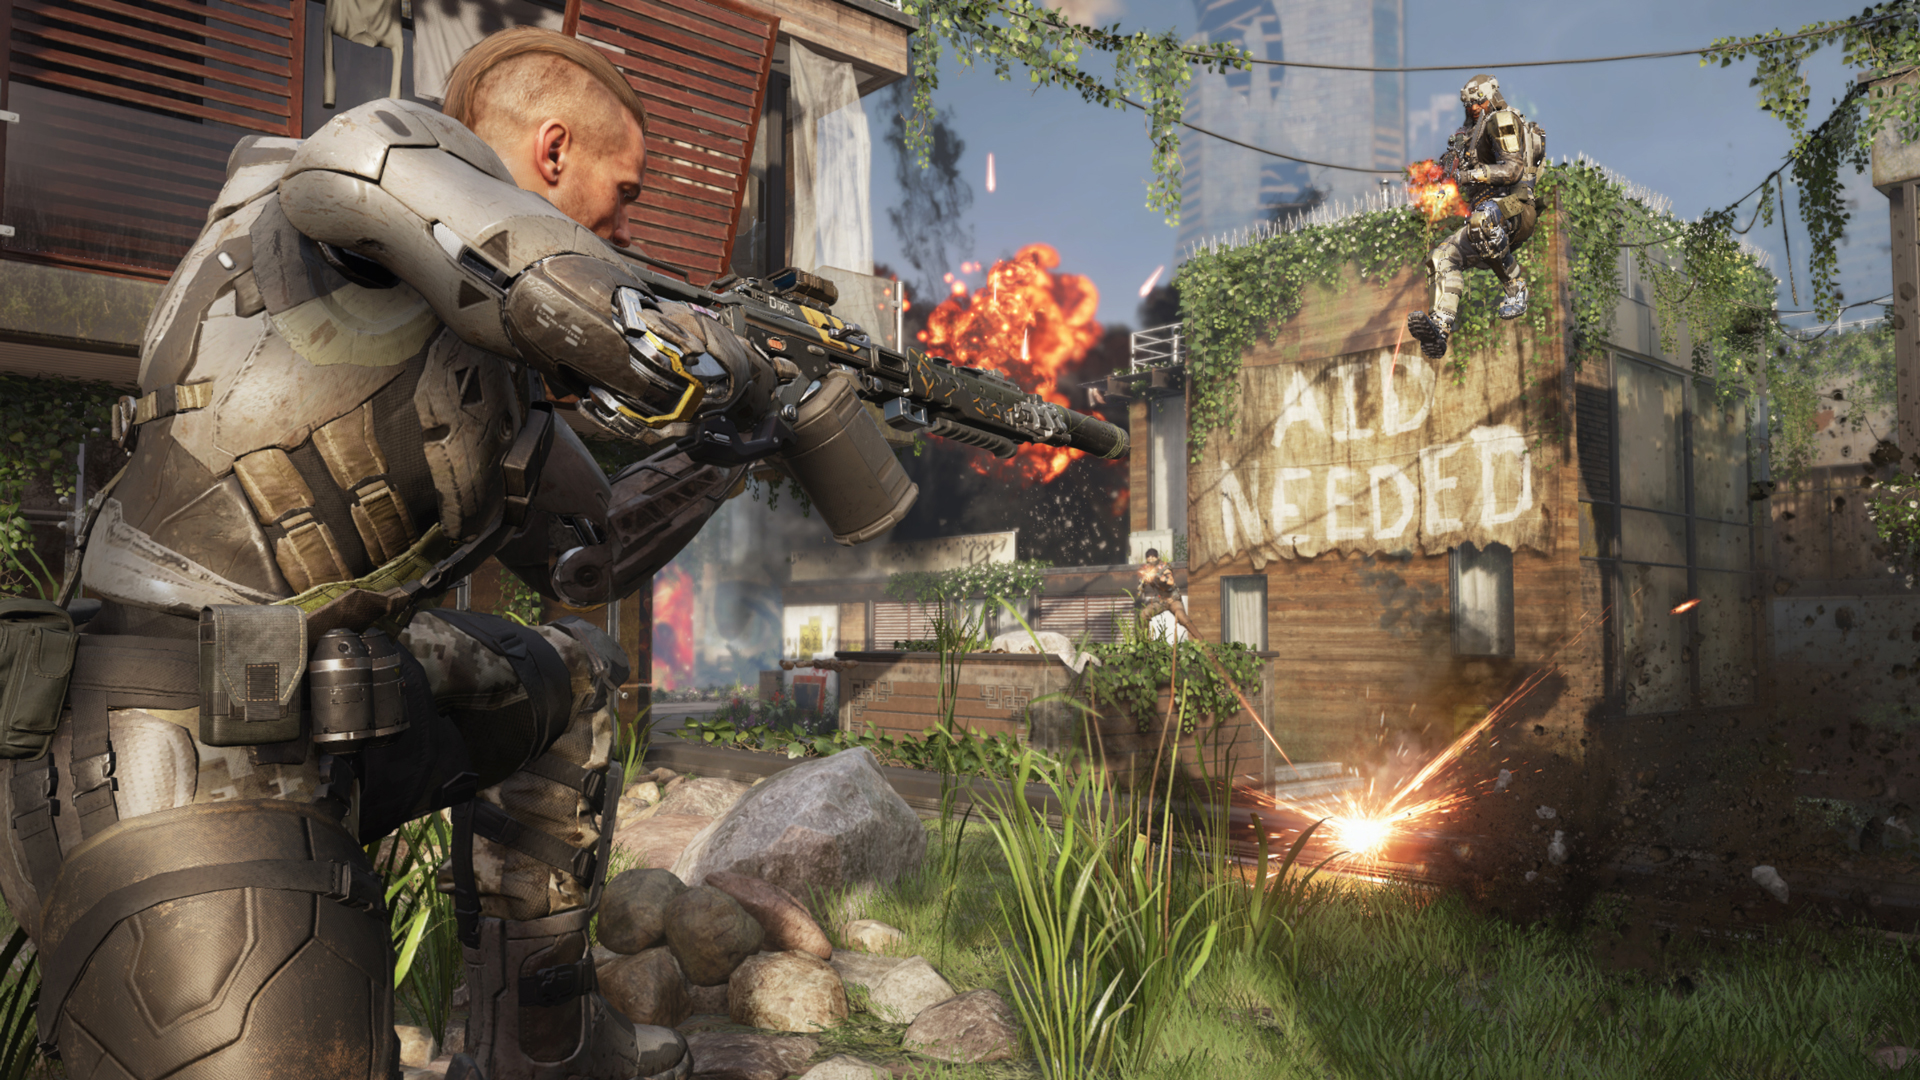 Call Of Duty Black Ops Iii Multiplayer Starter Pack On Steam